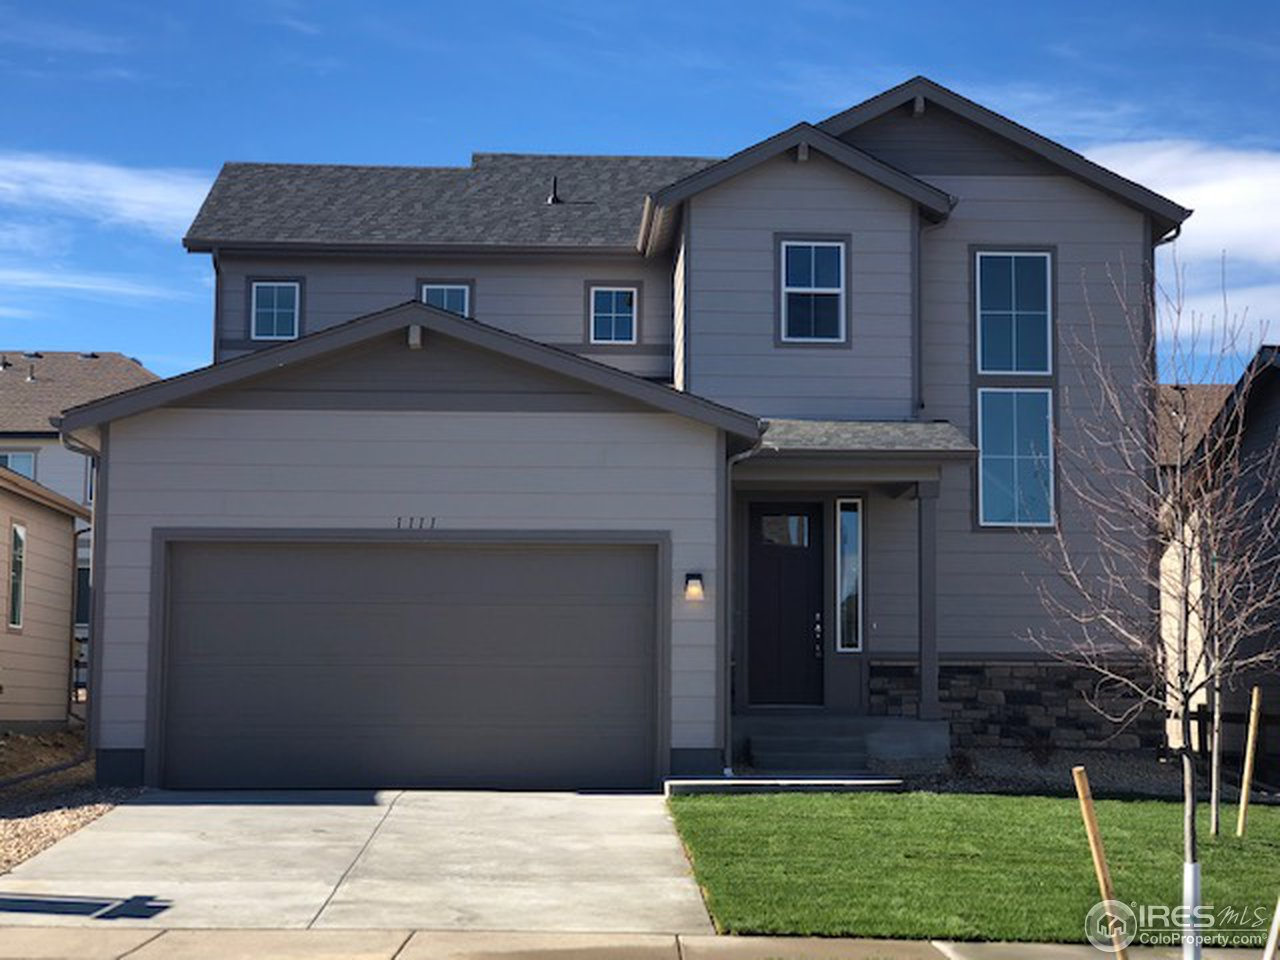 New 2-story with 9' ceilings throughout the main add to its spacious look and feel! Engineered hardwood all throughout the main level. Great kitchen with full tile backsplash and stainless steel appliances. All of the living & gathering areas are found on the main level, with 3 bdrms & 2 full baths privately situated upstairs. Enjoy the added convenience of a 2nd flr laundry. Jack-and-Jill bath between bdrms 2 & 3. Crawl space and front & back yard landscaping included. Lots of windows!!!